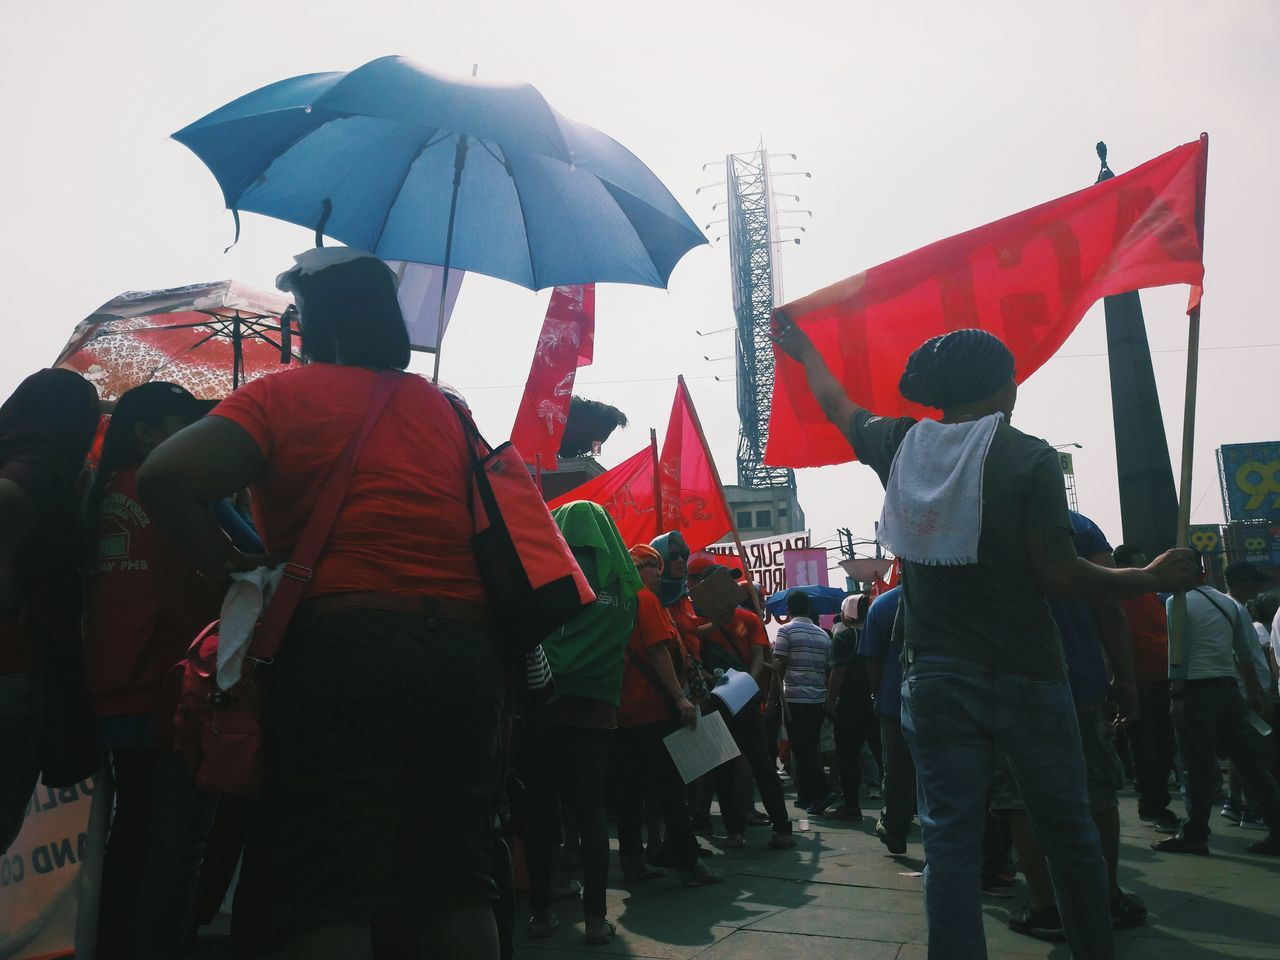 Protestor People Crowd Red Large Group Of People Togetherness Politics And Government EyeEmPHLaborDay2017 EyeEm Phillipines Real People Manual Worker Labor Day The Photojournalist - 2017 EyeEm Awards